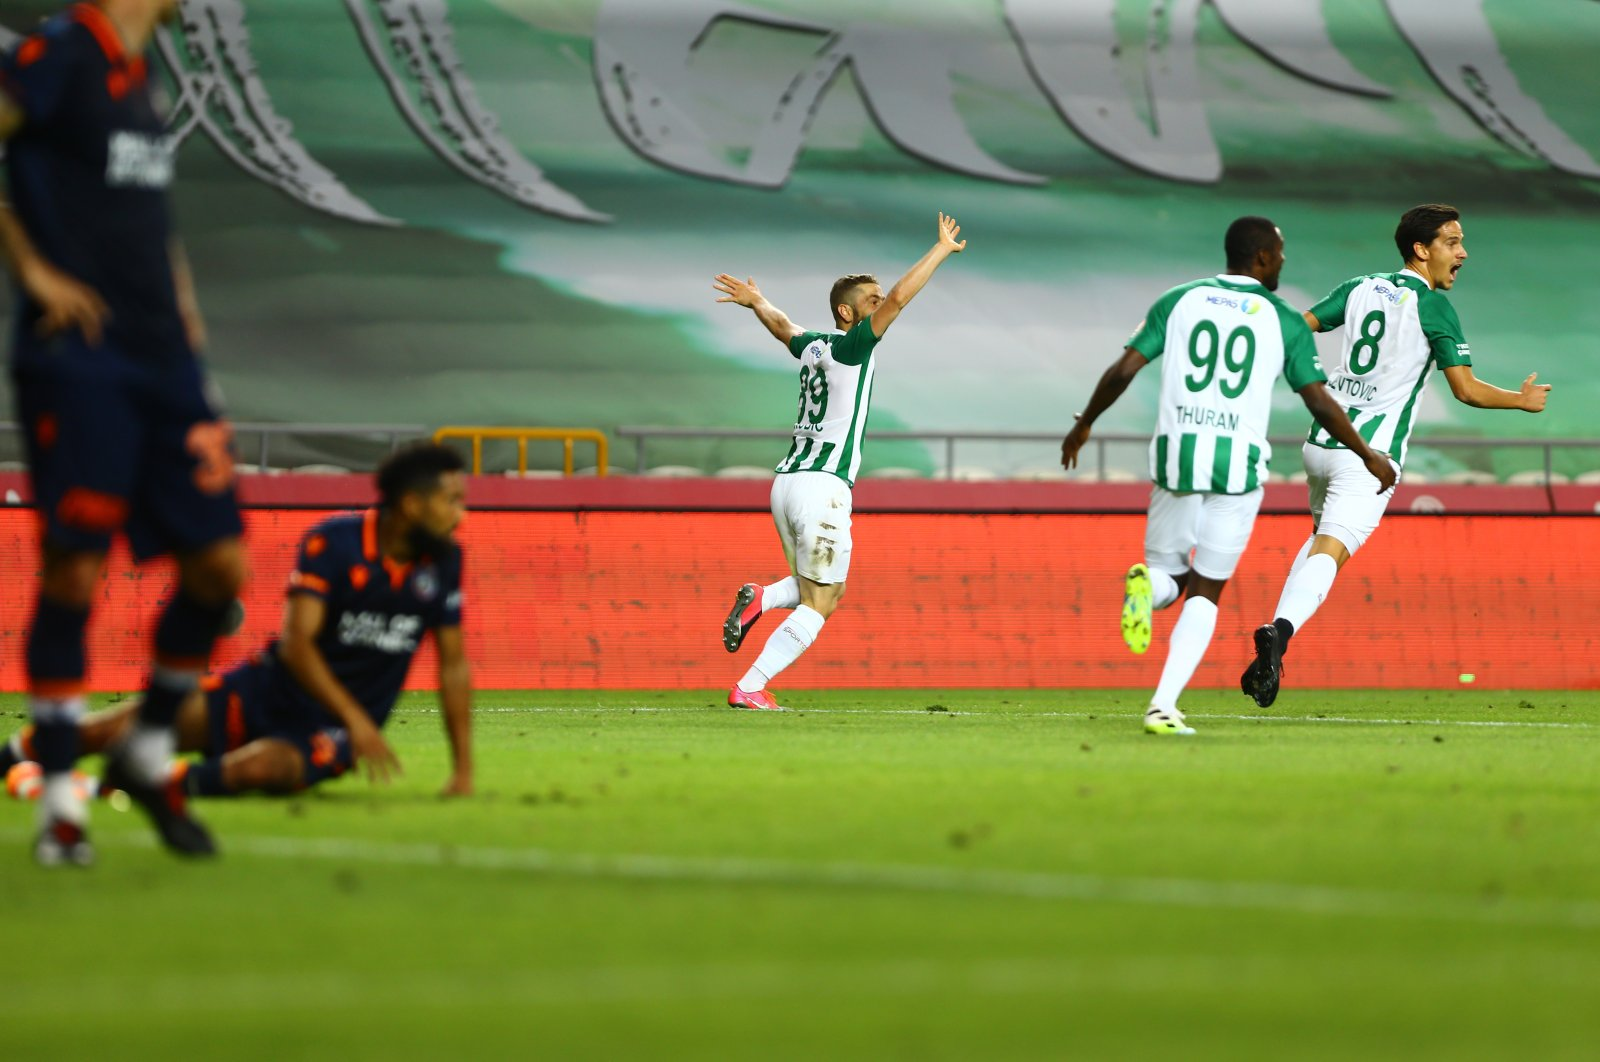 Konyaspor players celebrate defeating Başakşehir in Konya, Turkey, July 13, 2020. (AA Photo)